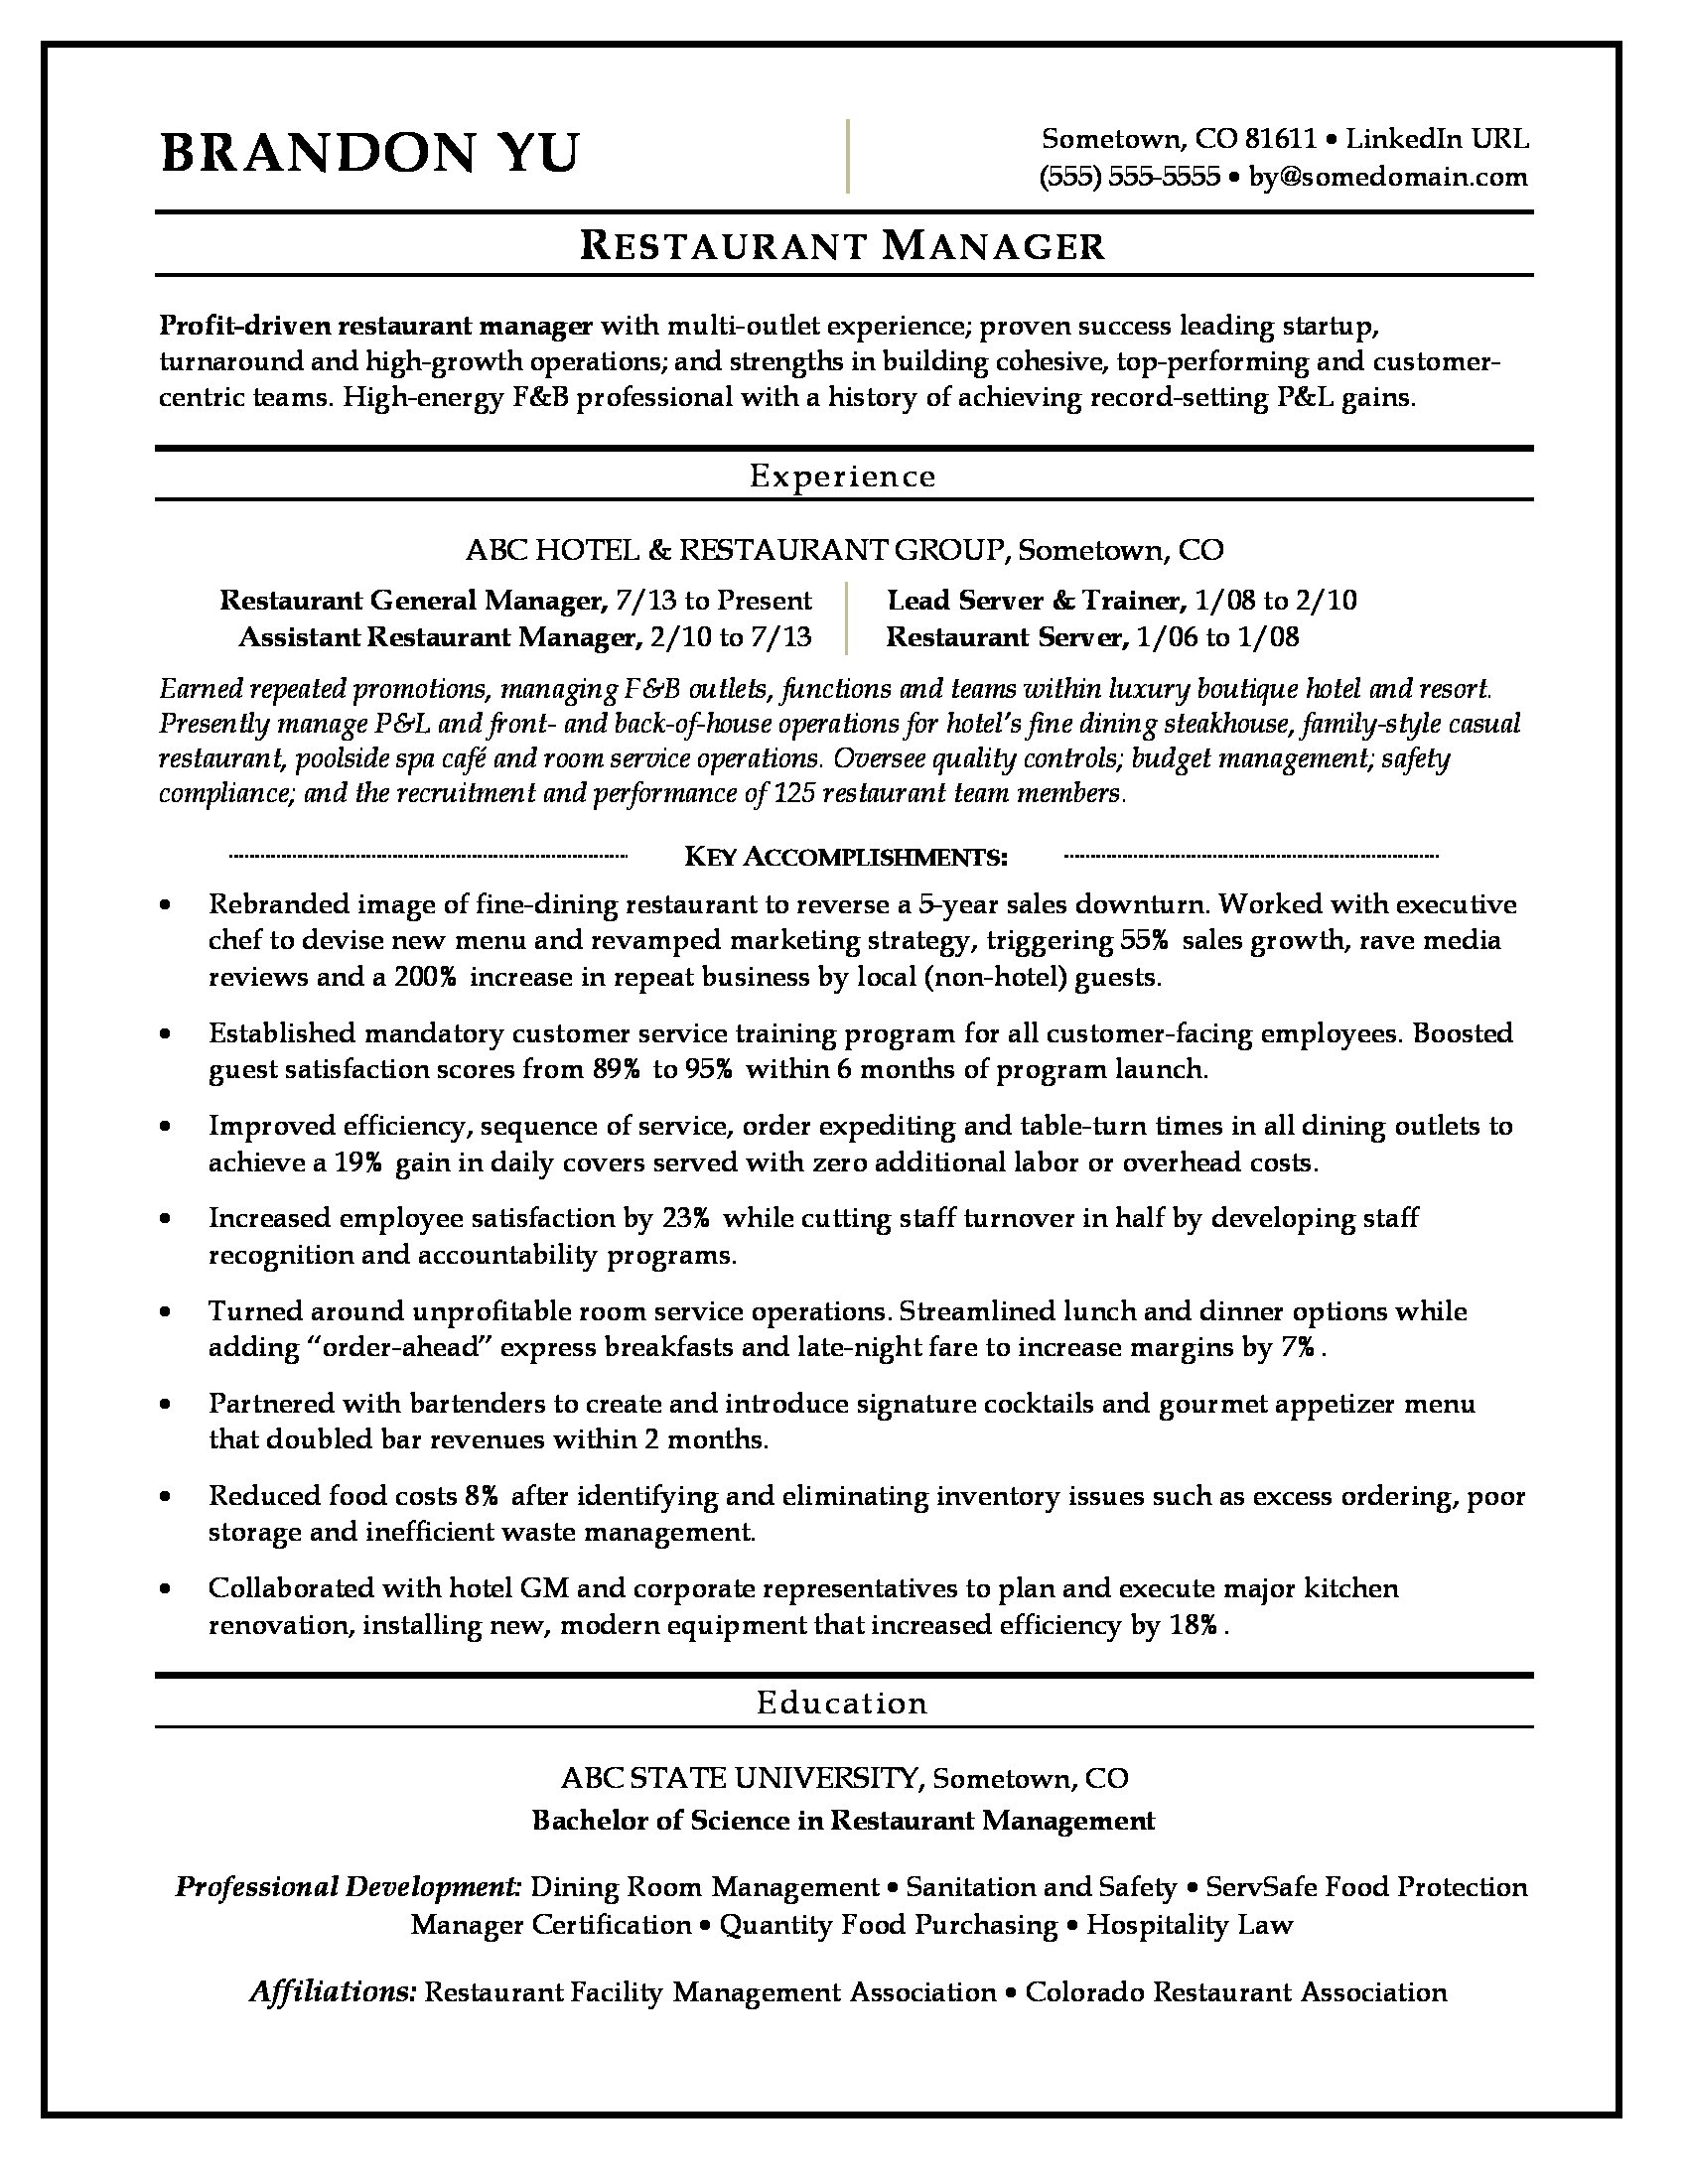 Awesome Sample Resume For A Restaurant Manager Inside Restaurant Manager Resume Sample